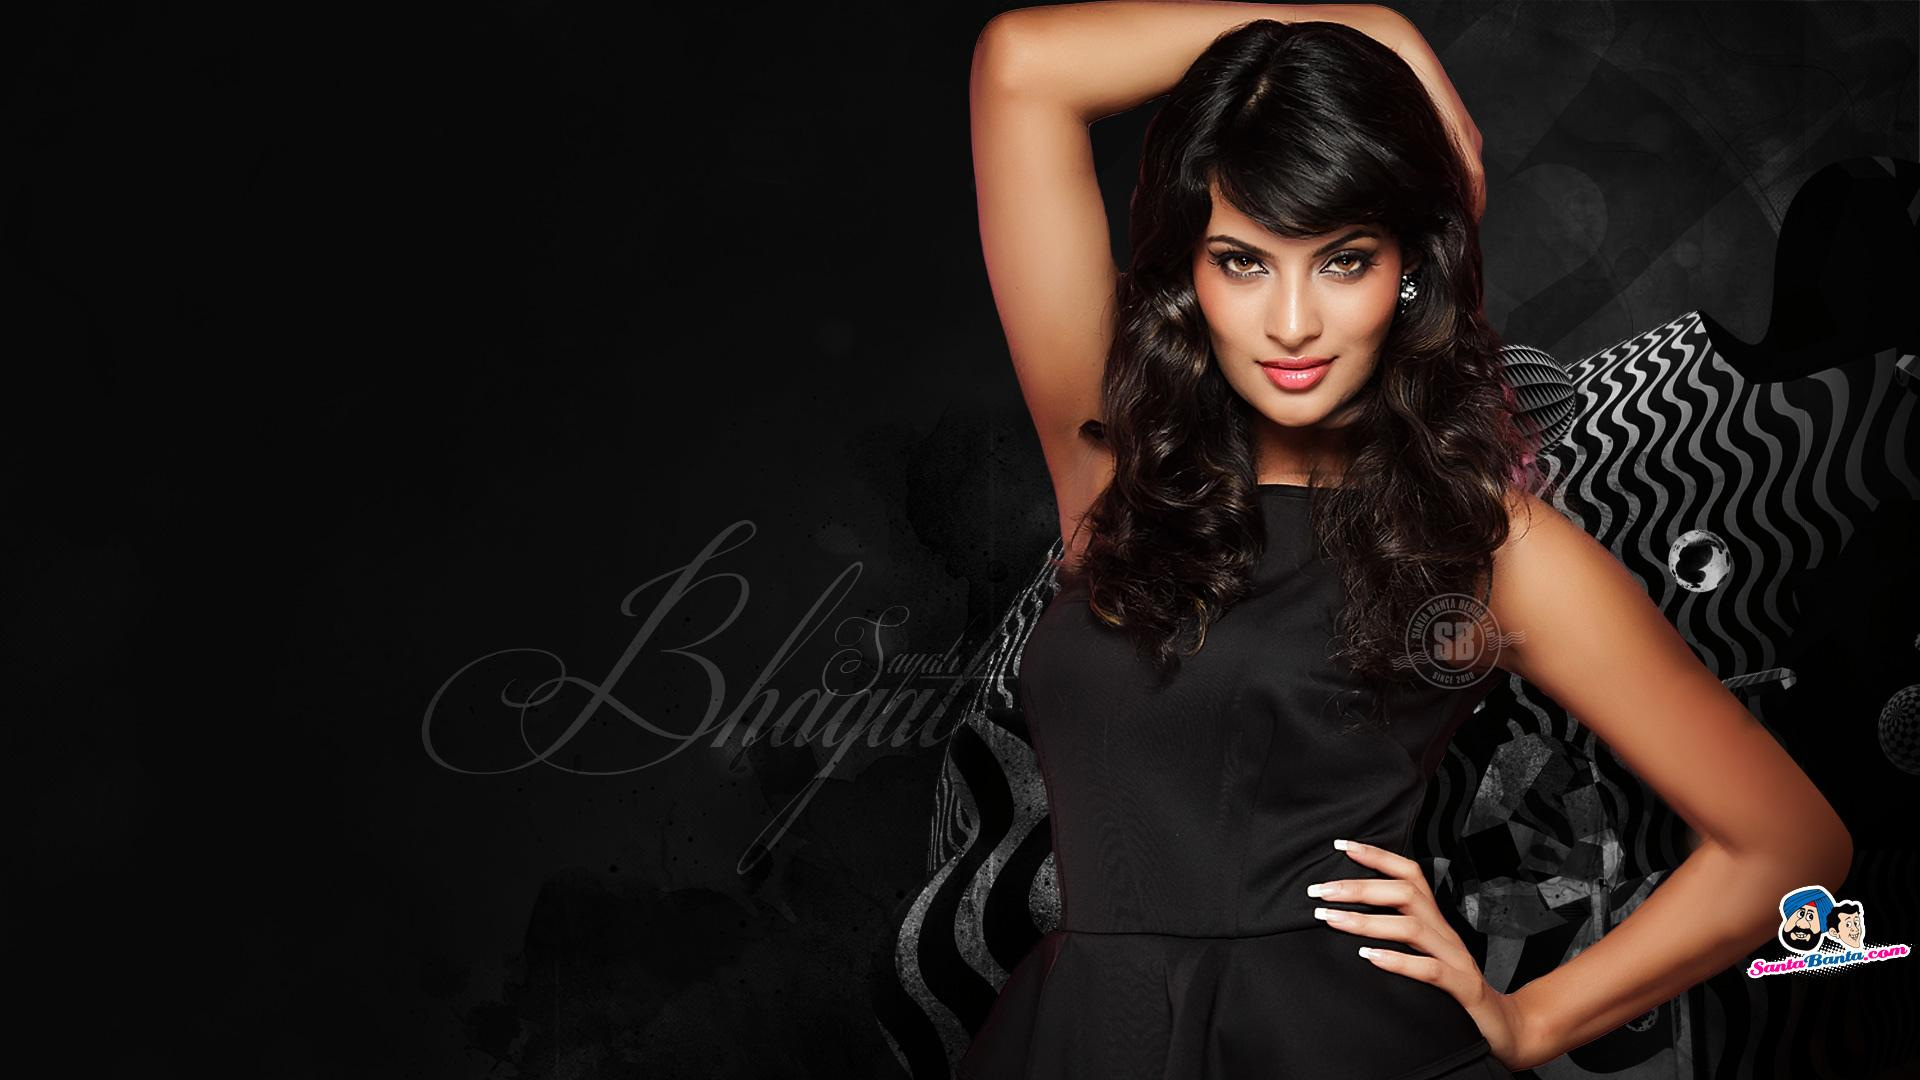 India Celebrity wallpapers HD quality